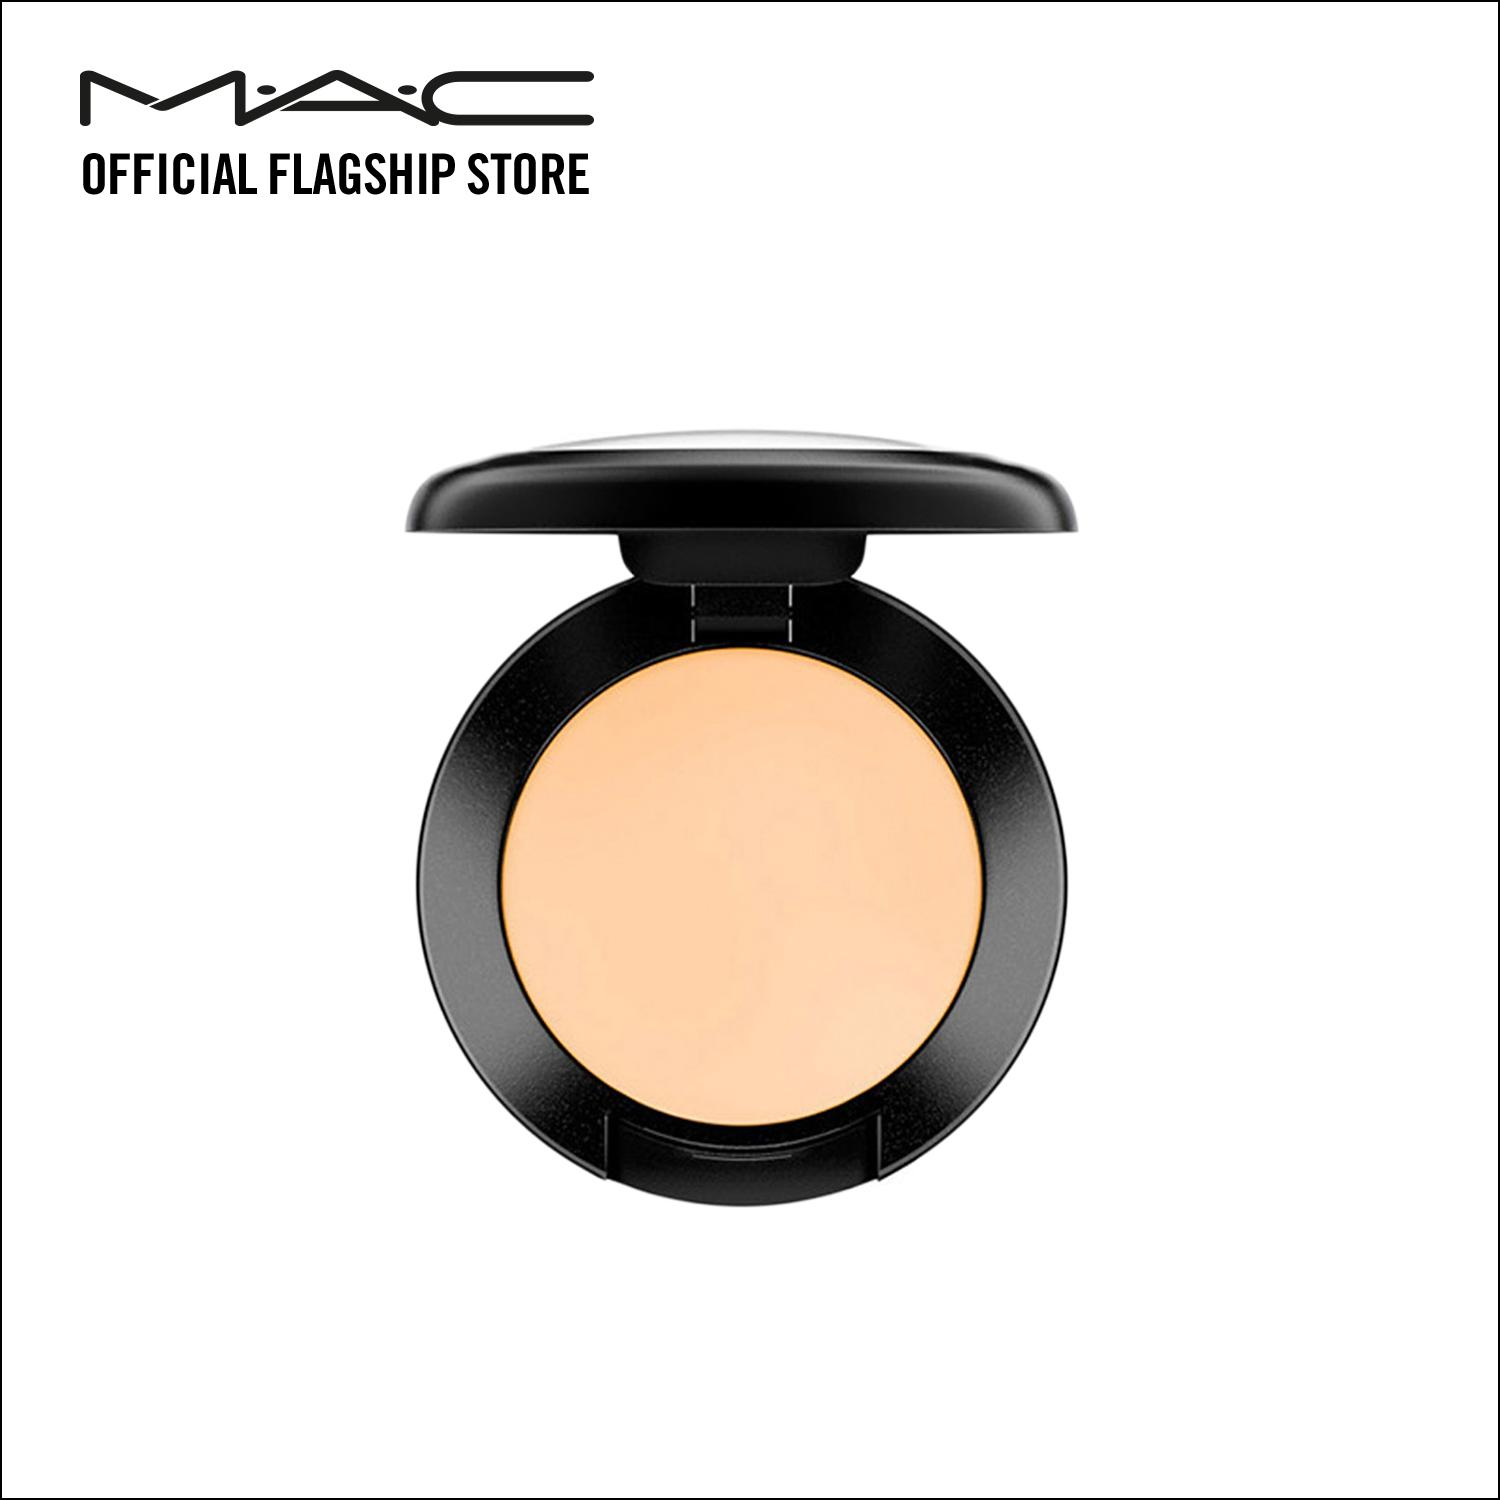 MAC STUDIO FINISH SPF 35 CONCEALER - NC30 Philippines